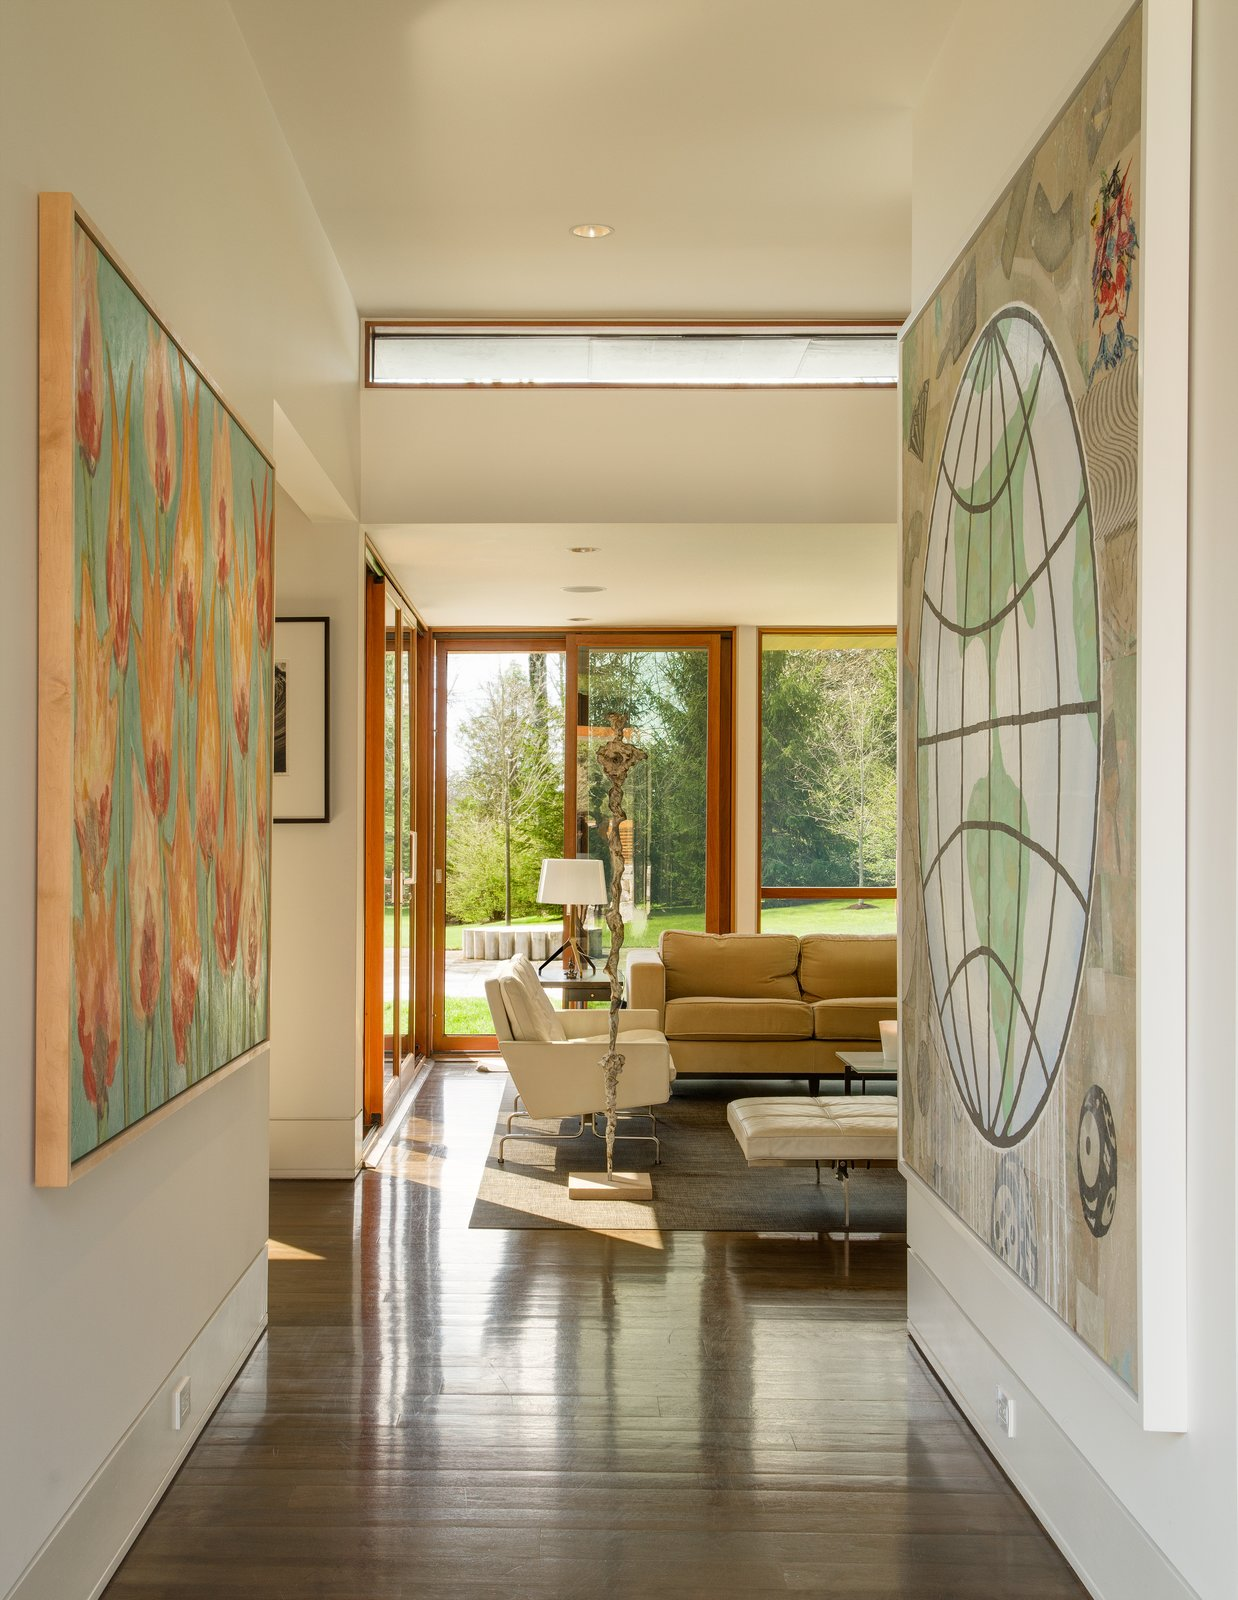 Mahogany windows and doors, black walnut floors, and beech veneer millwork create warmth in the bright interior.  Photo 4 of 8 in An Eliot Noyes Transformation in Connecticut Honors the Experimental Spirit of the Original